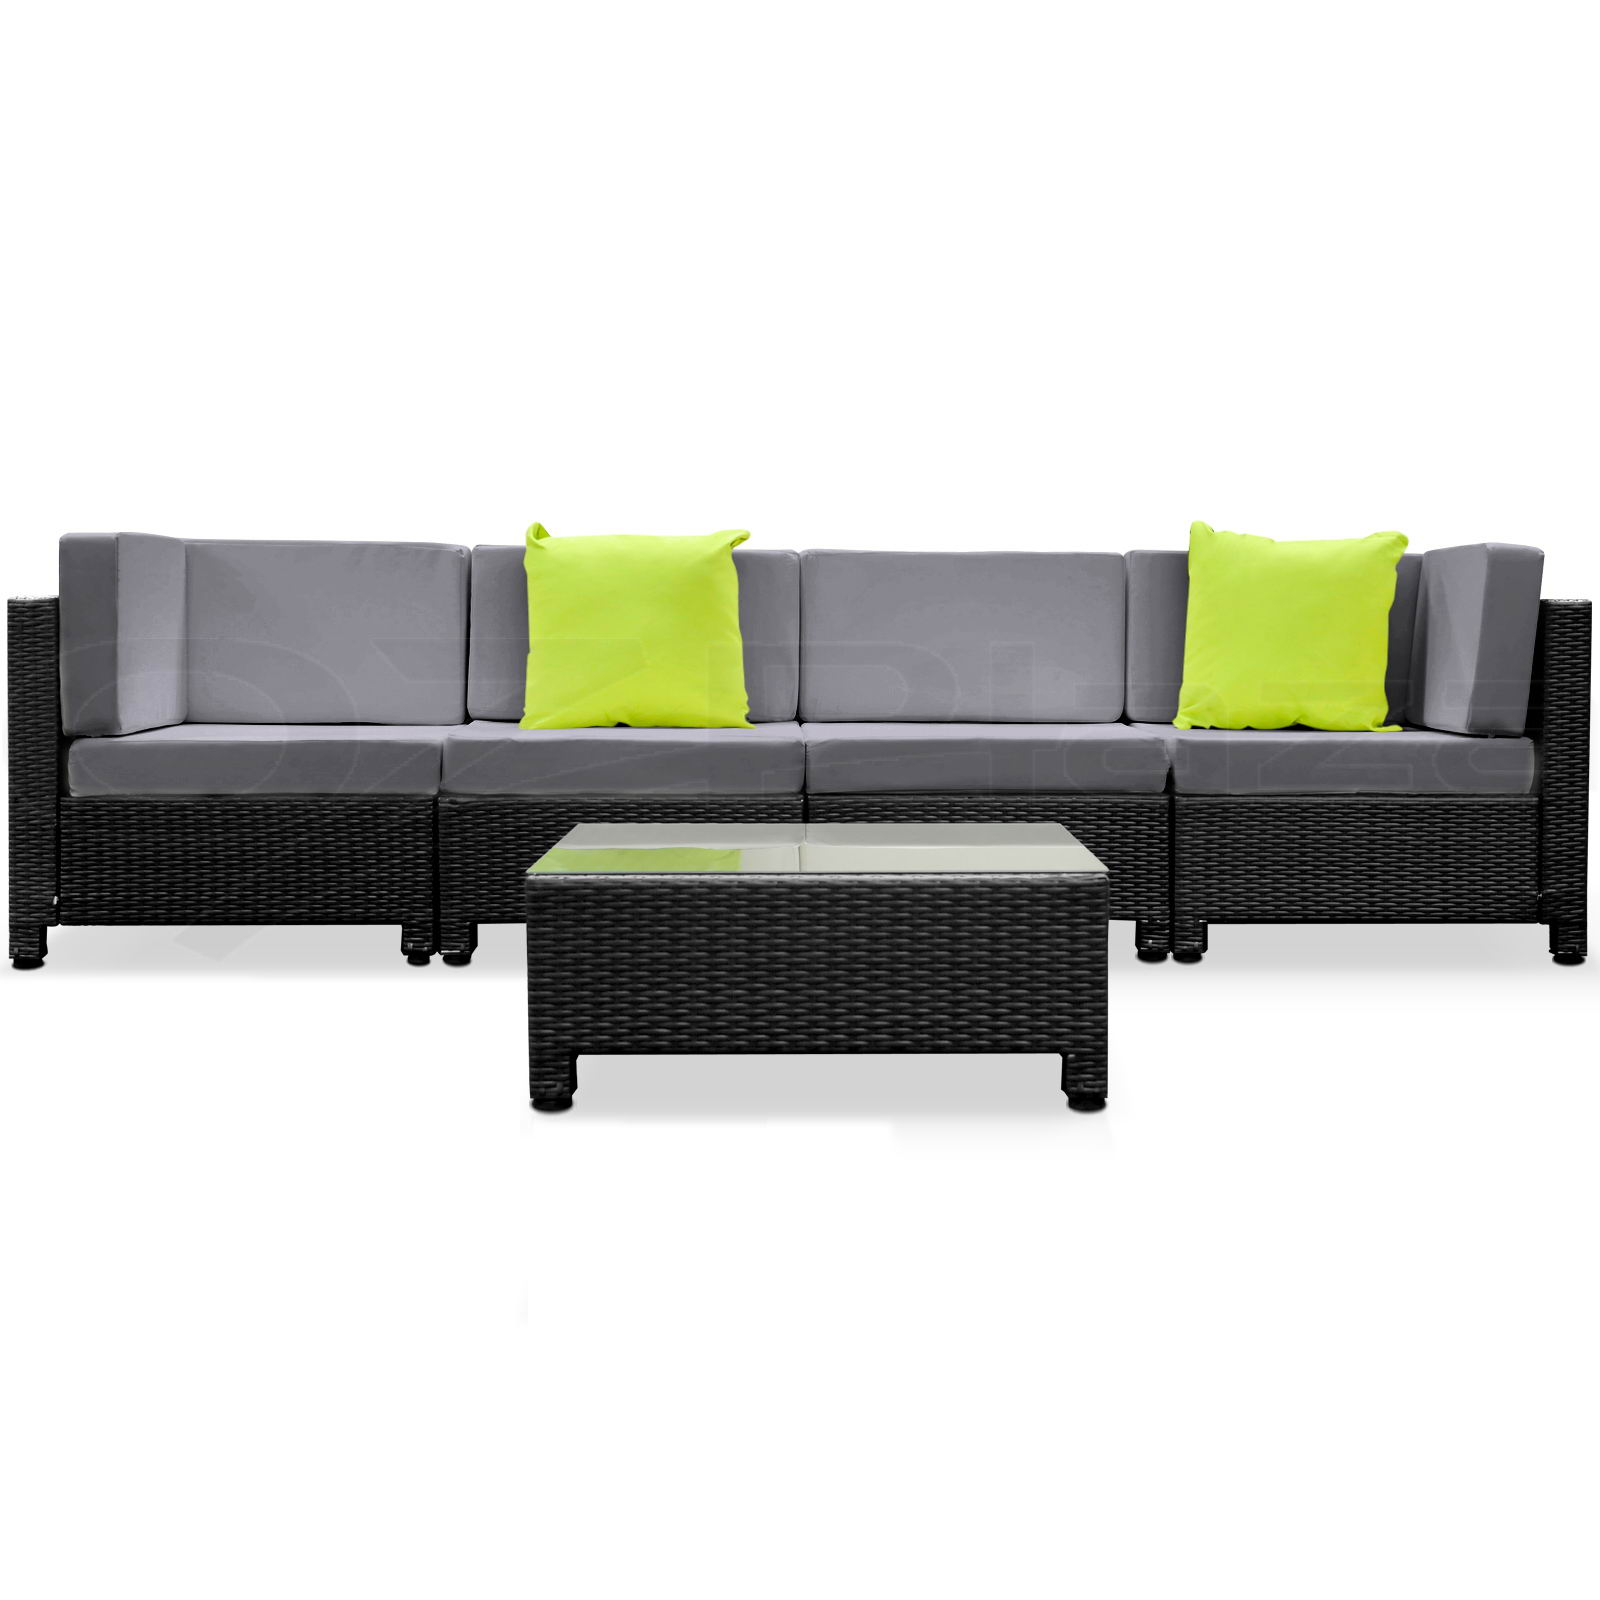 gardeon 5pc sofa outdoor furniture set pe wicker rattan. Black Bedroom Furniture Sets. Home Design Ideas